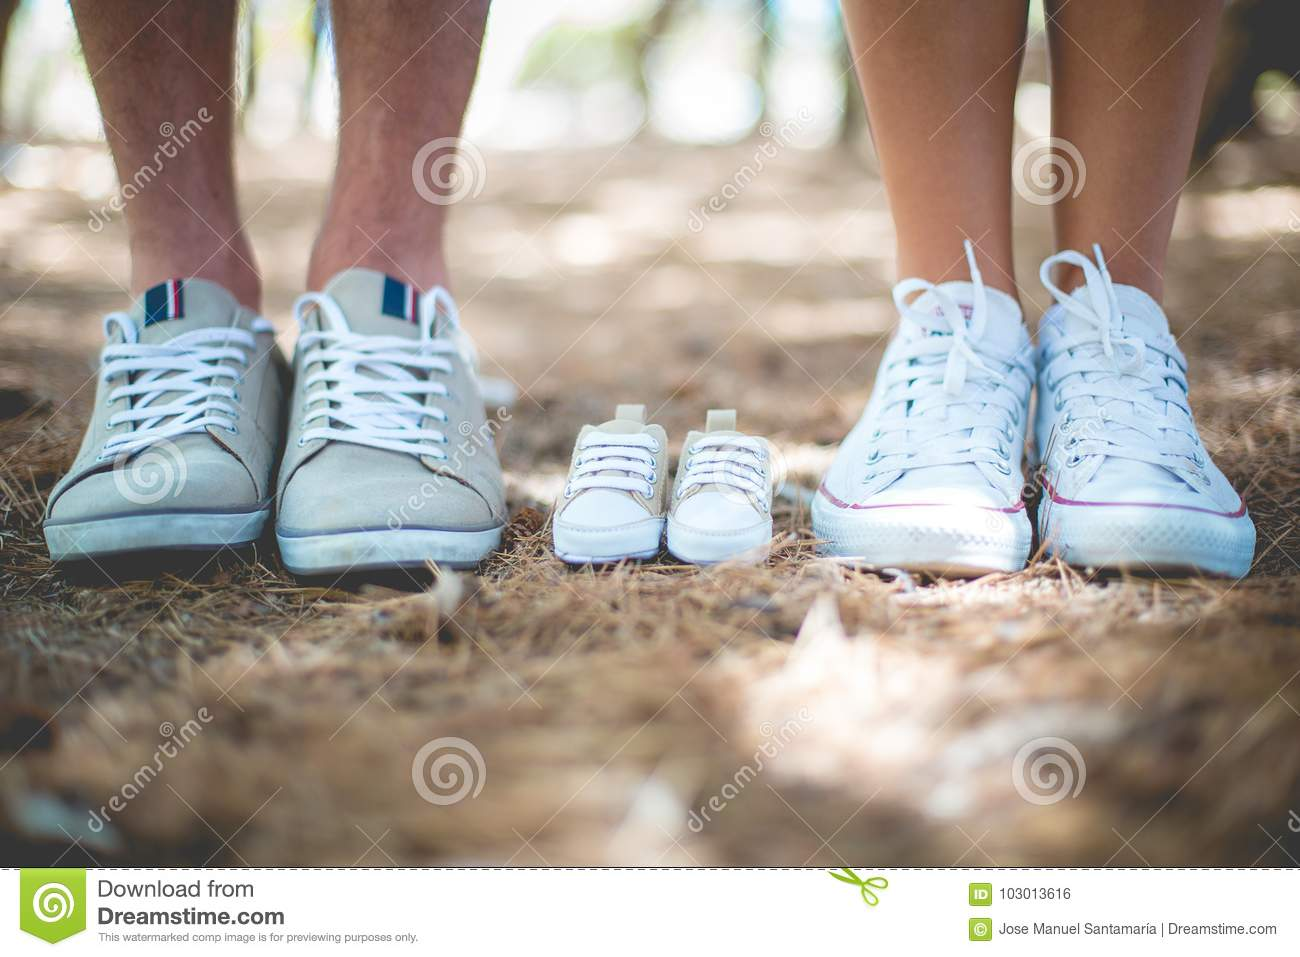 3b58a7f7275d4 1+1=3 stock photo. Image of blogger, baby, girl, pregnancy - 103013616